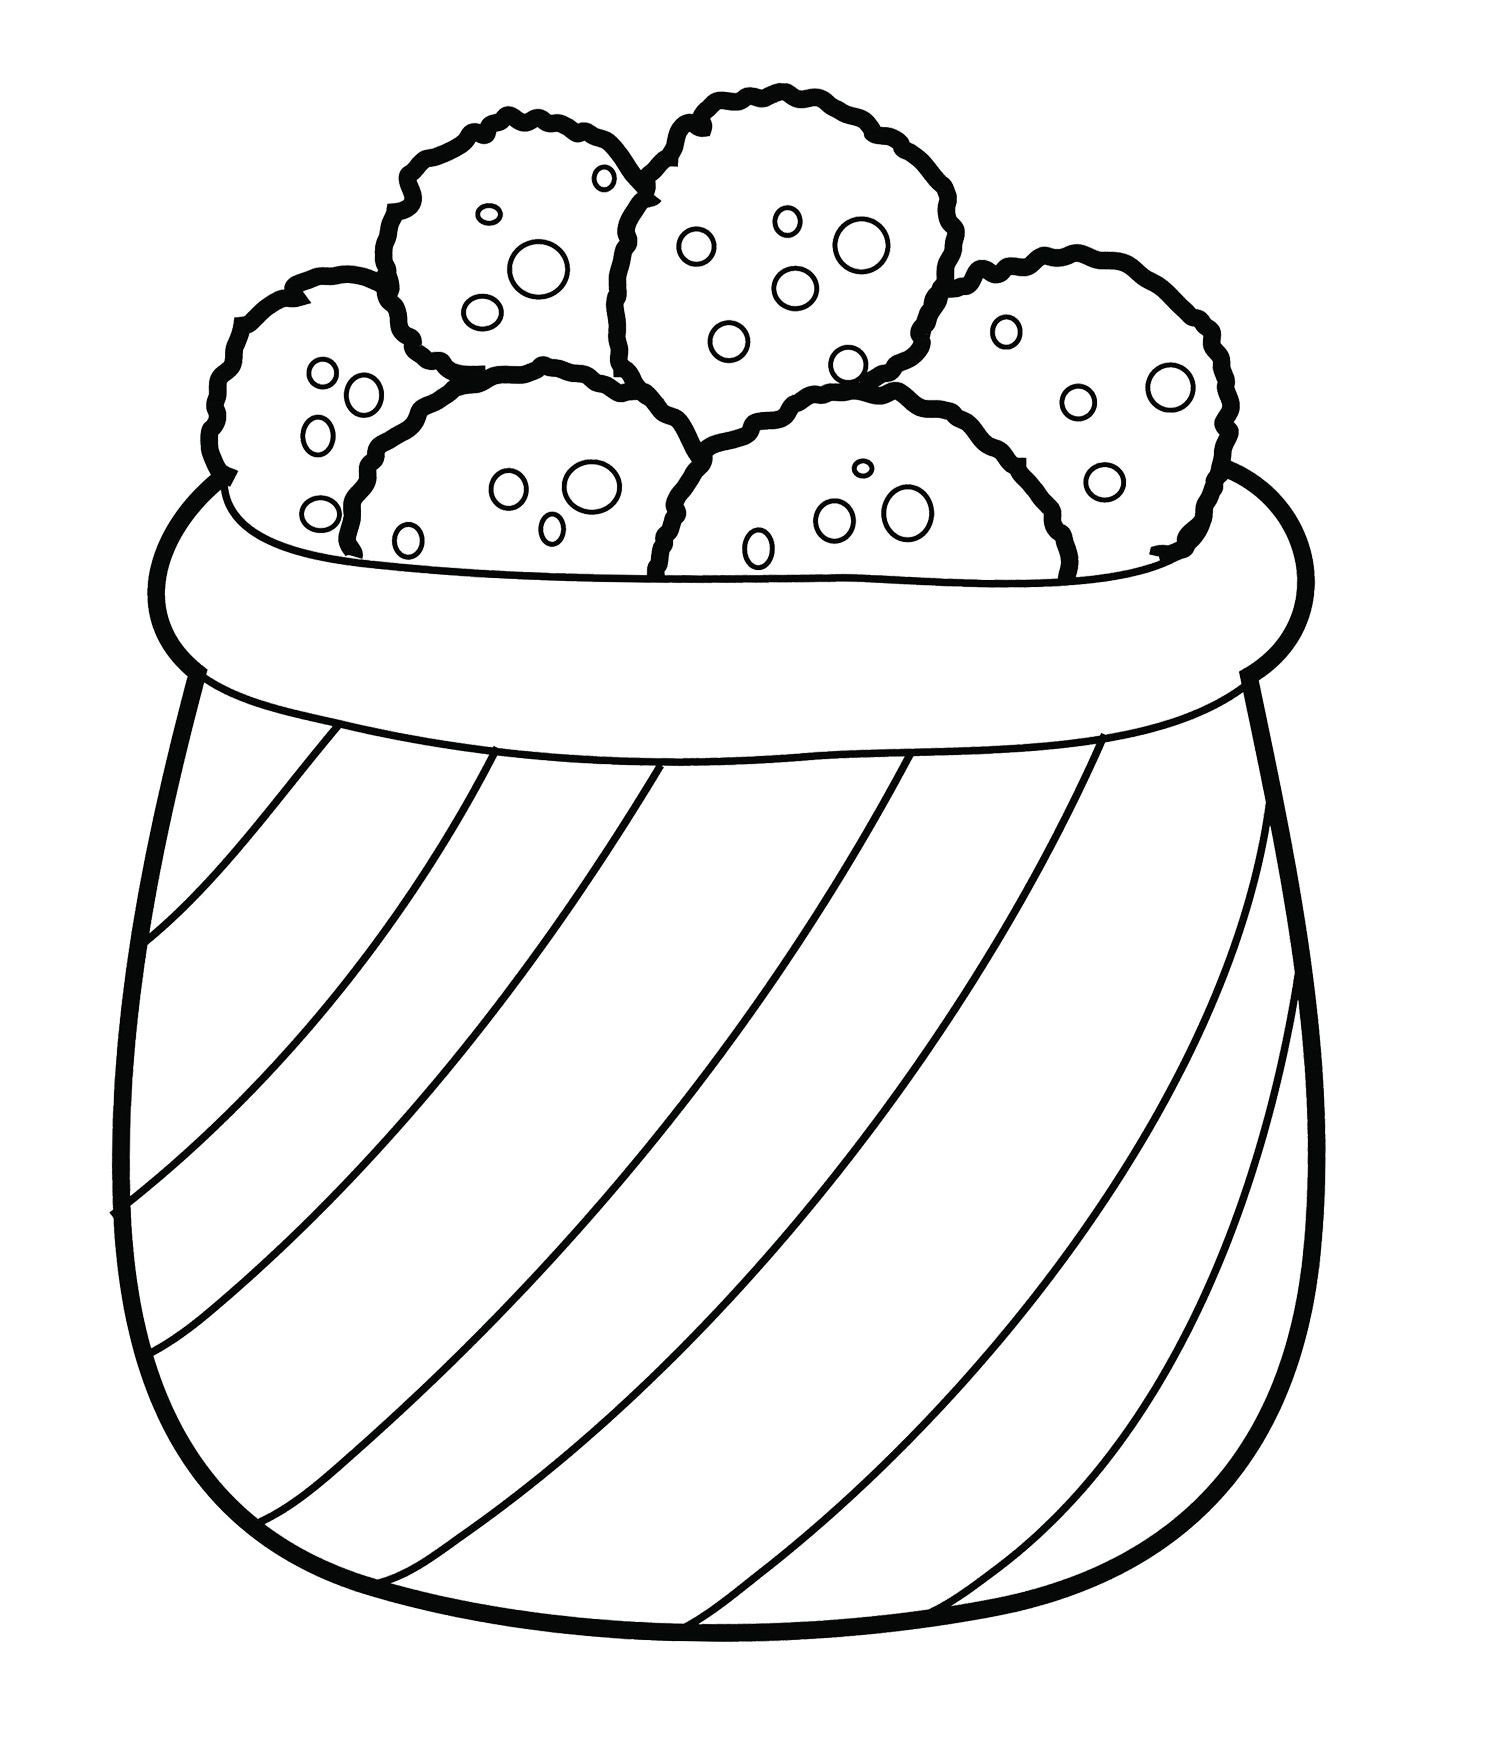 Cookies In The Basket Coloring Page Grinch coloring